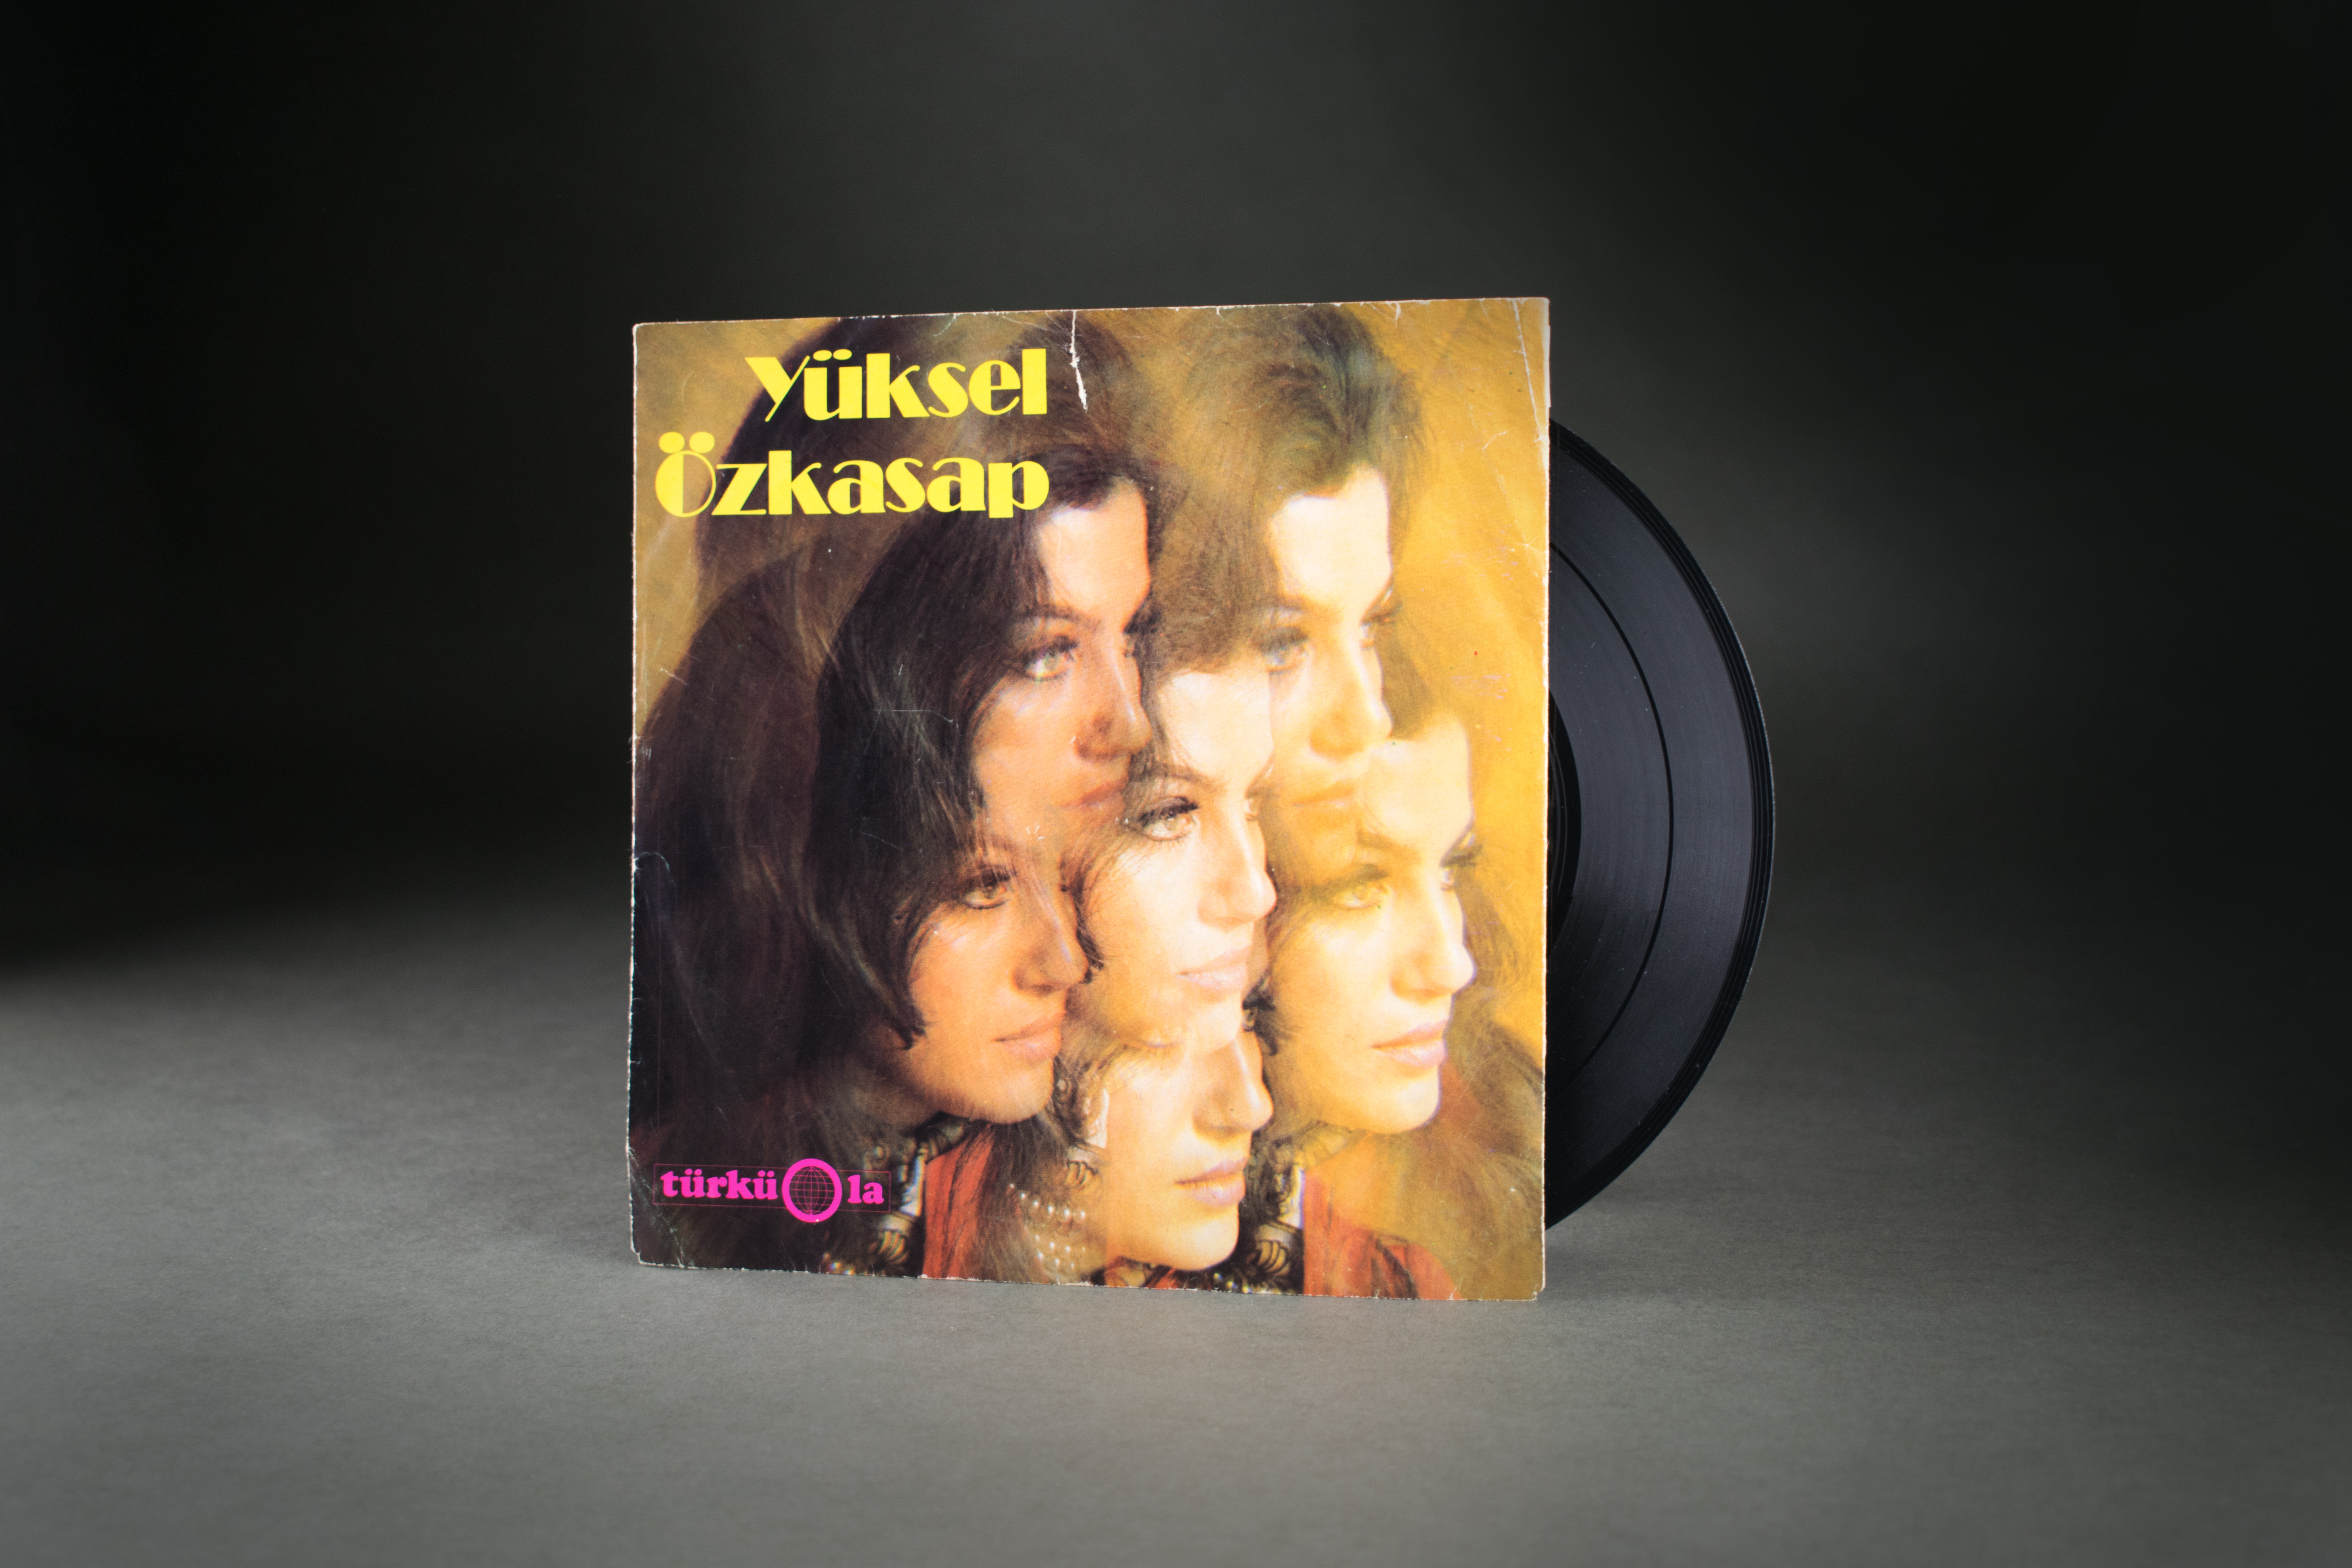 "Single by Yüksel Özkasap on the Türküola label, 1968: Yüksel Özkasap came to Velbert as a factory worker and worked in the Stannay key factory, where she also started to sing. This resulted in a music career that earned her the nickname ""Köln Bülbülü"" (""Nightingale of Cologne"") from her fans. Özkasap sang around 500 ""Gurbet Türküleri"" (""Folk Songs from a Foreign Country"") and released over 20 albums. DOMiD archive, Cologne, SD 0130 000"